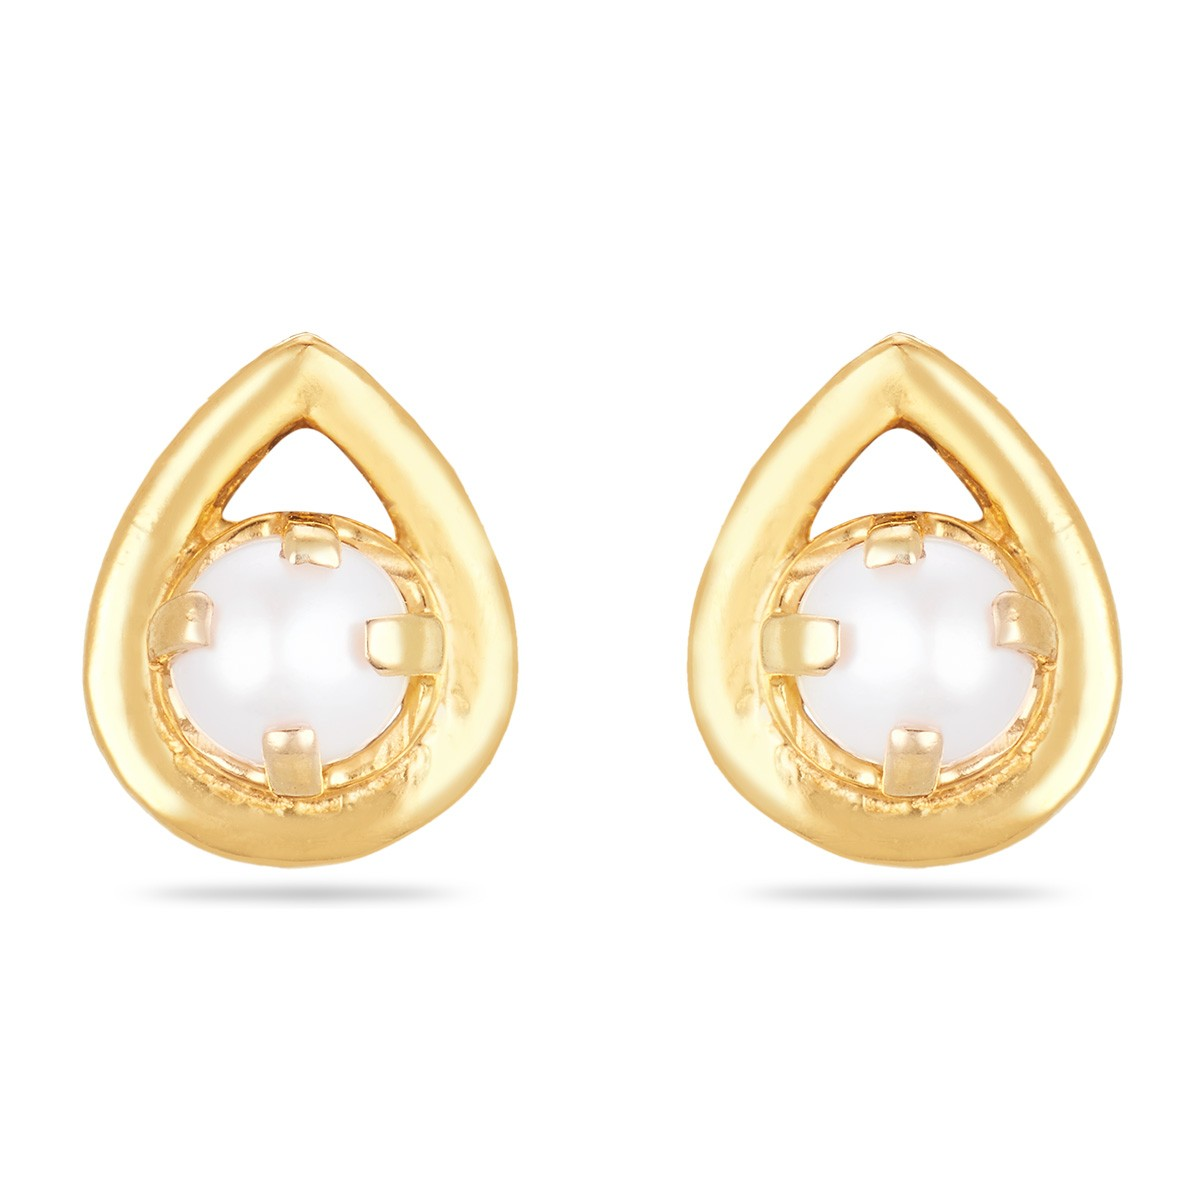 4 gram gold earrings designs